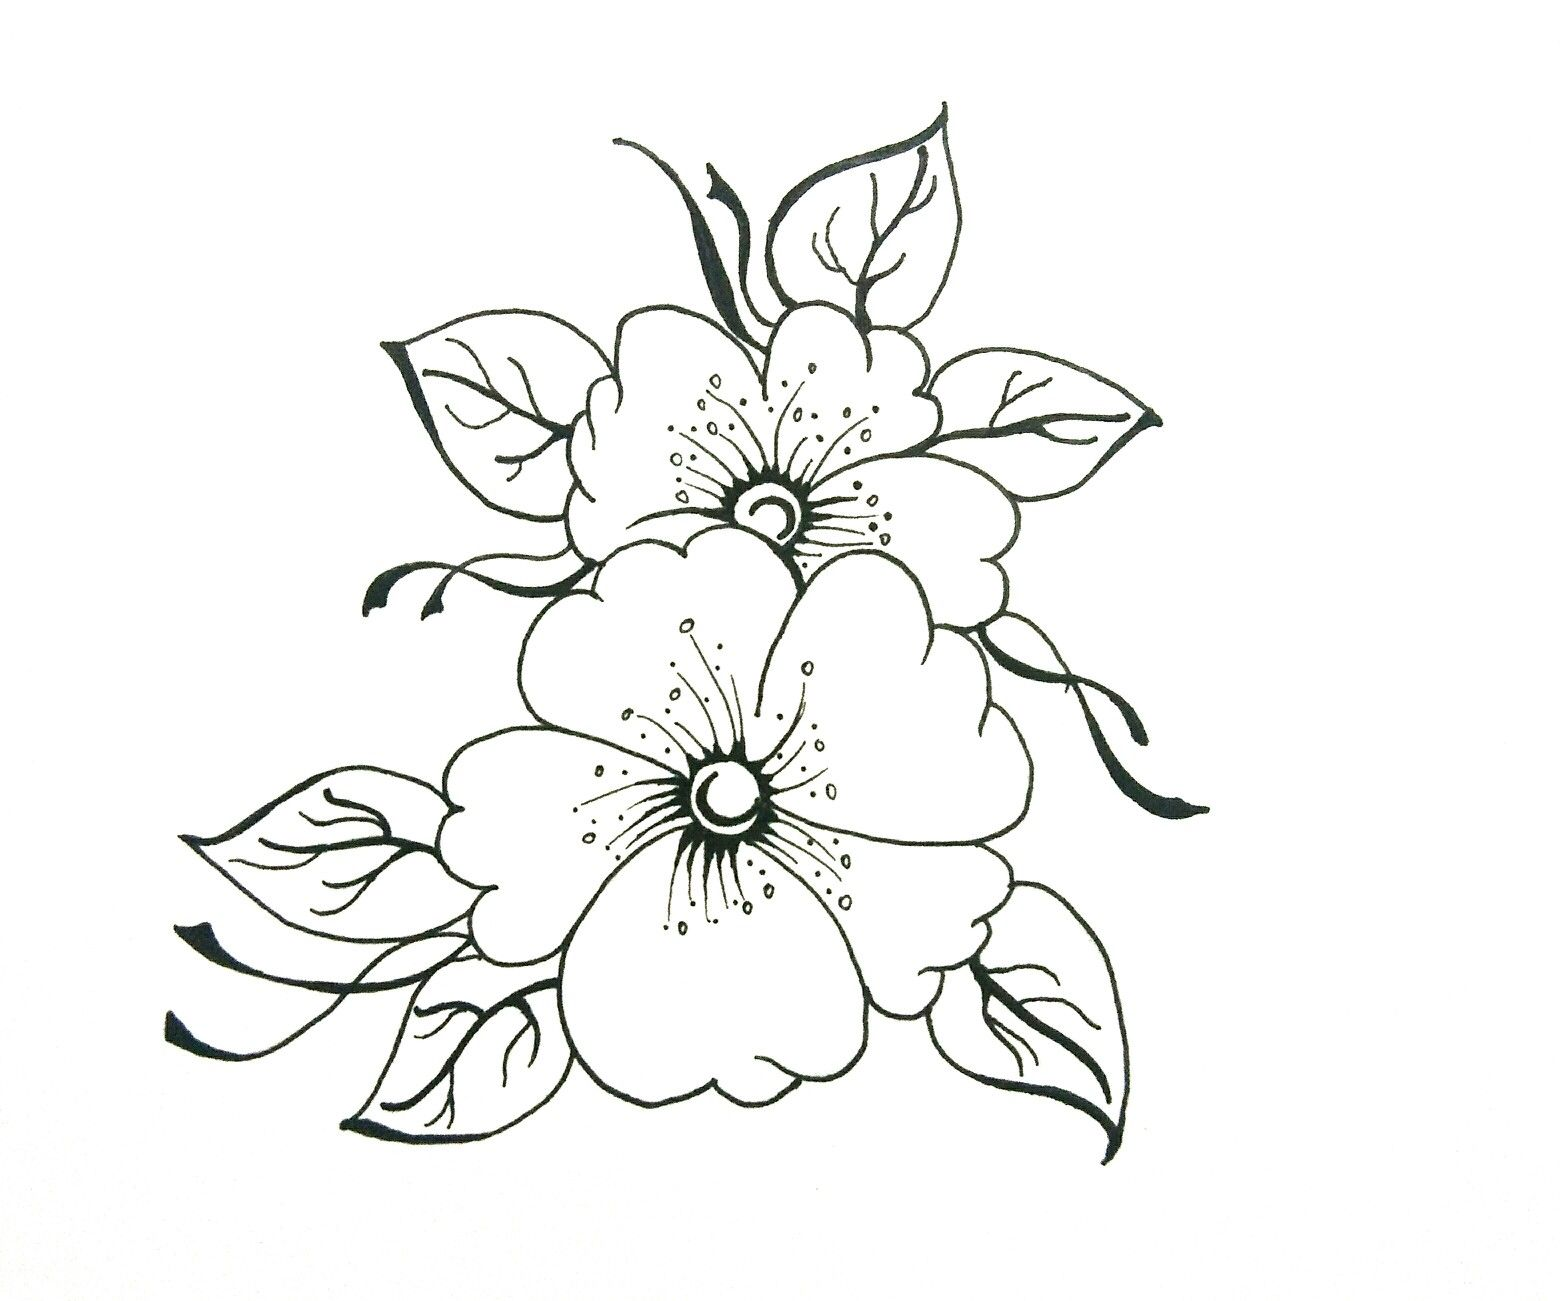 Easy Flower Drawing Do It Yourself Easy Flower Drawings